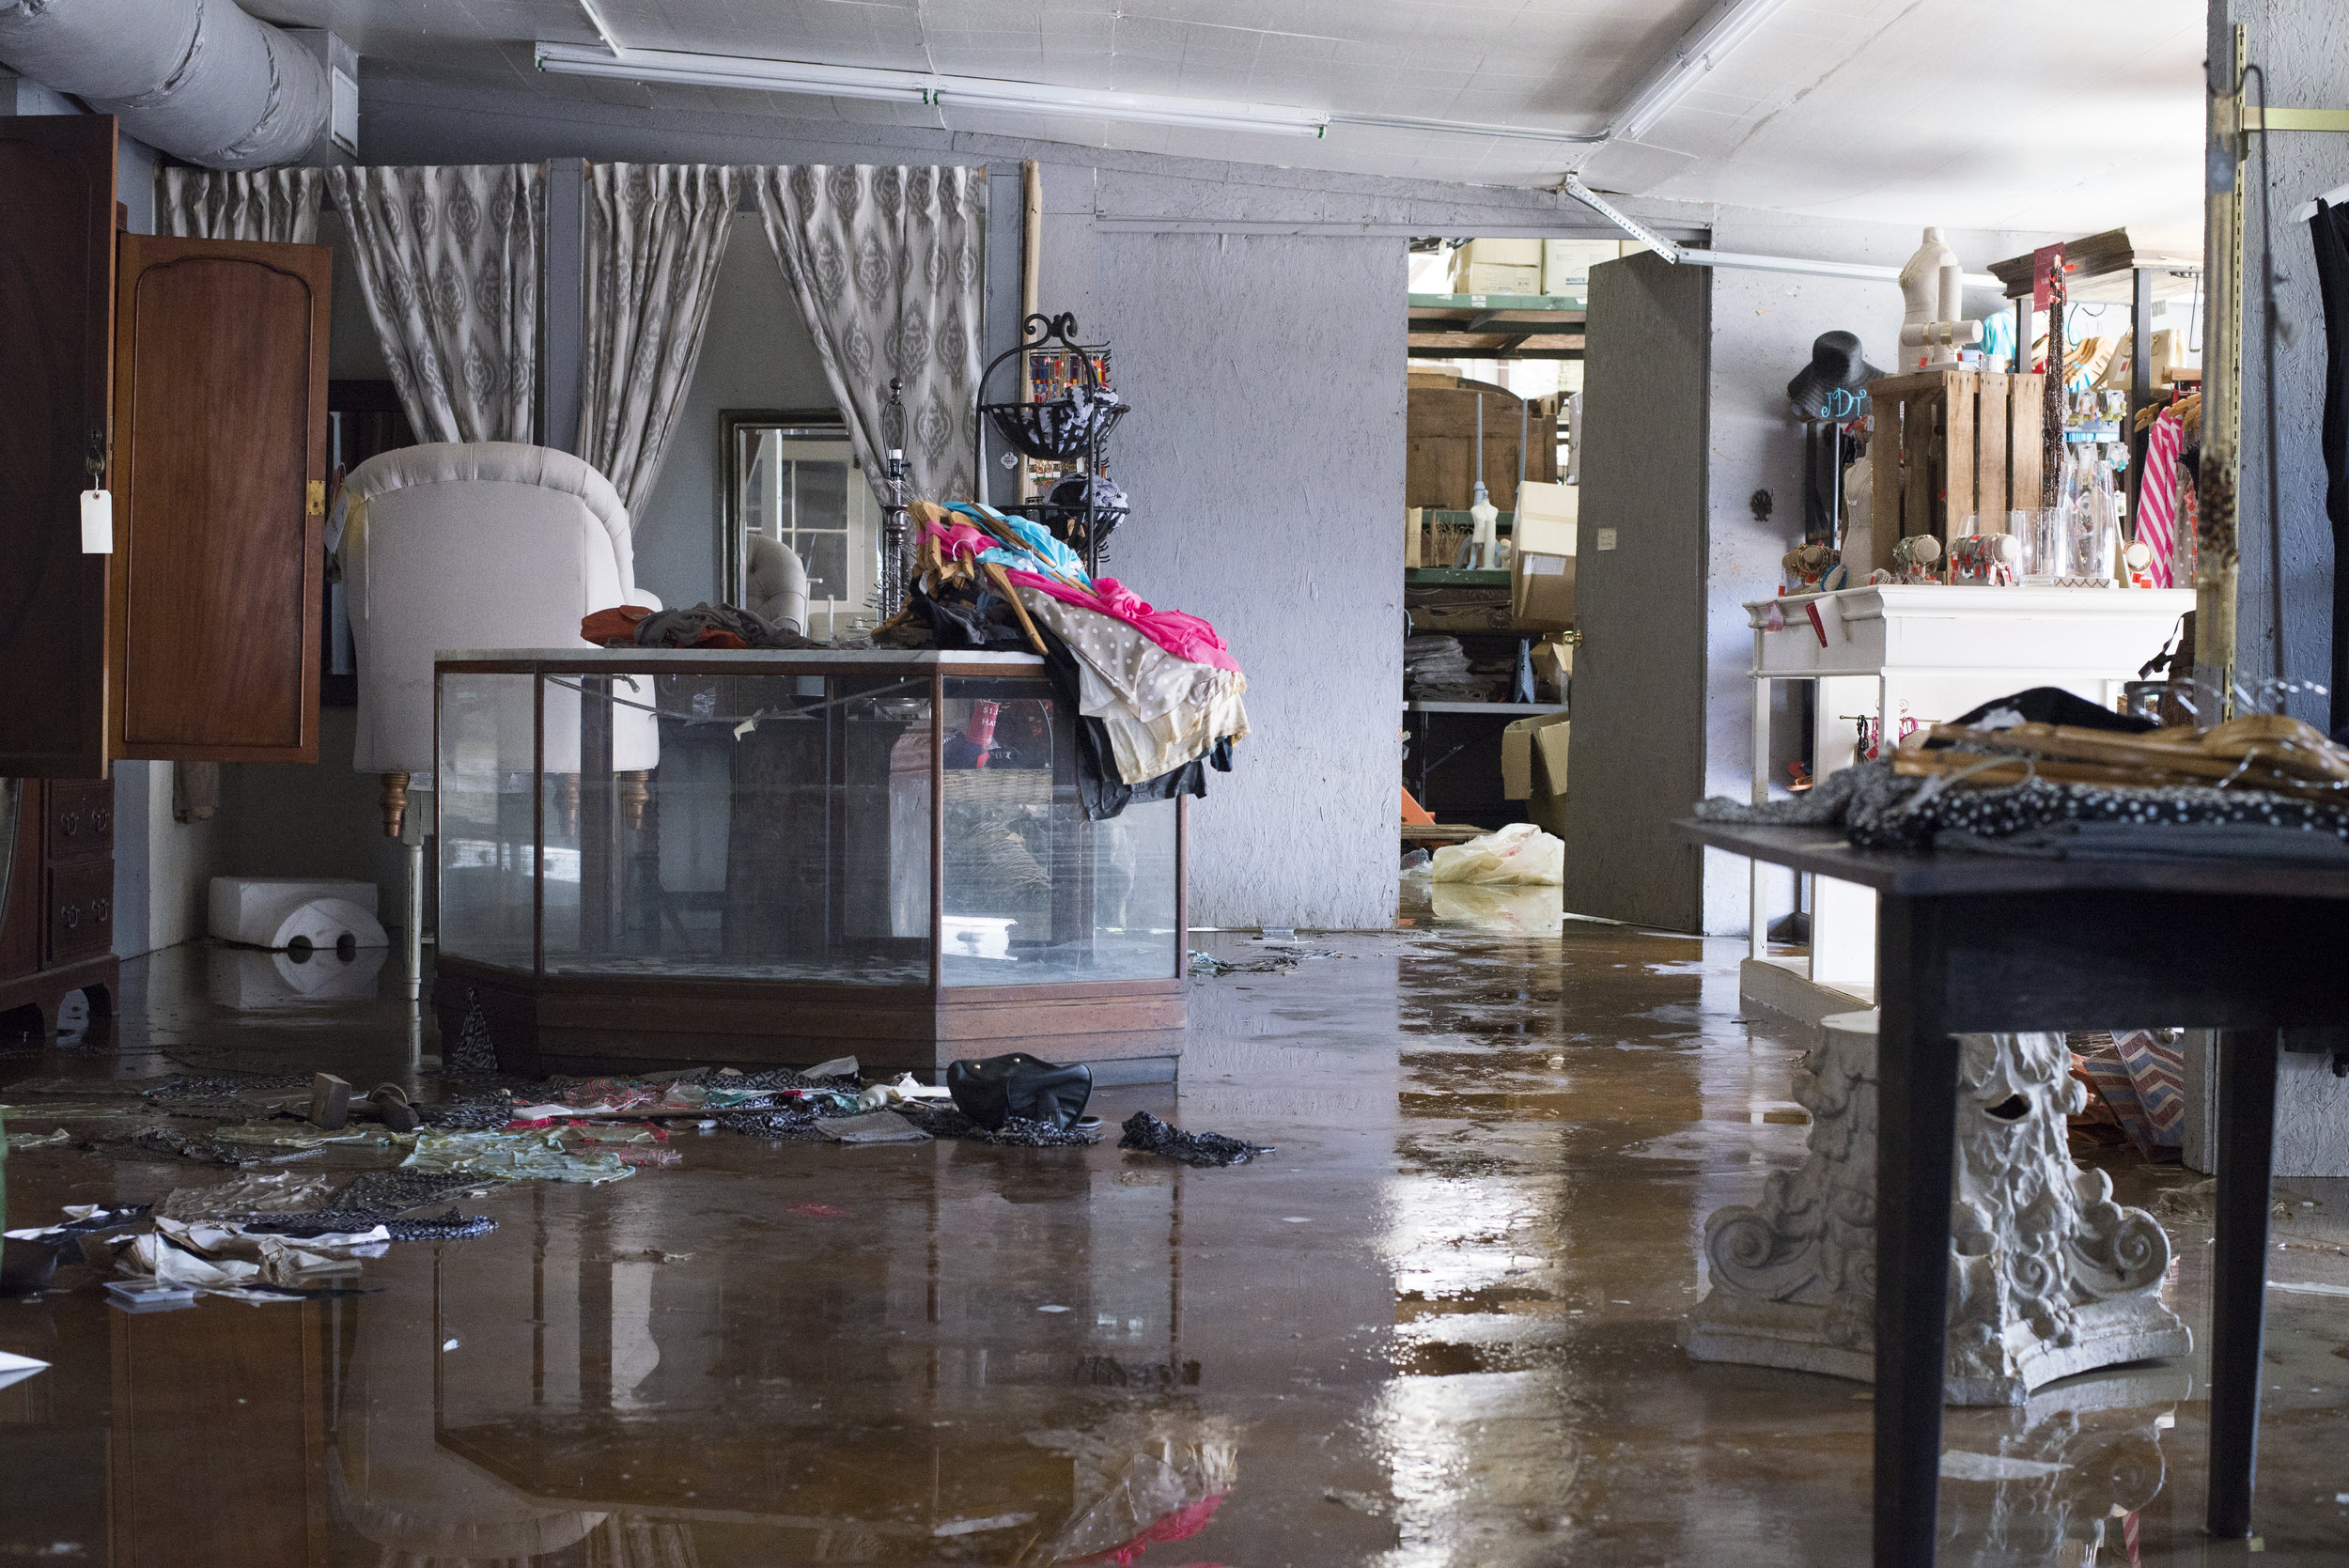 The Royal Standard Flood Damage_Allie Appel_6.jpg